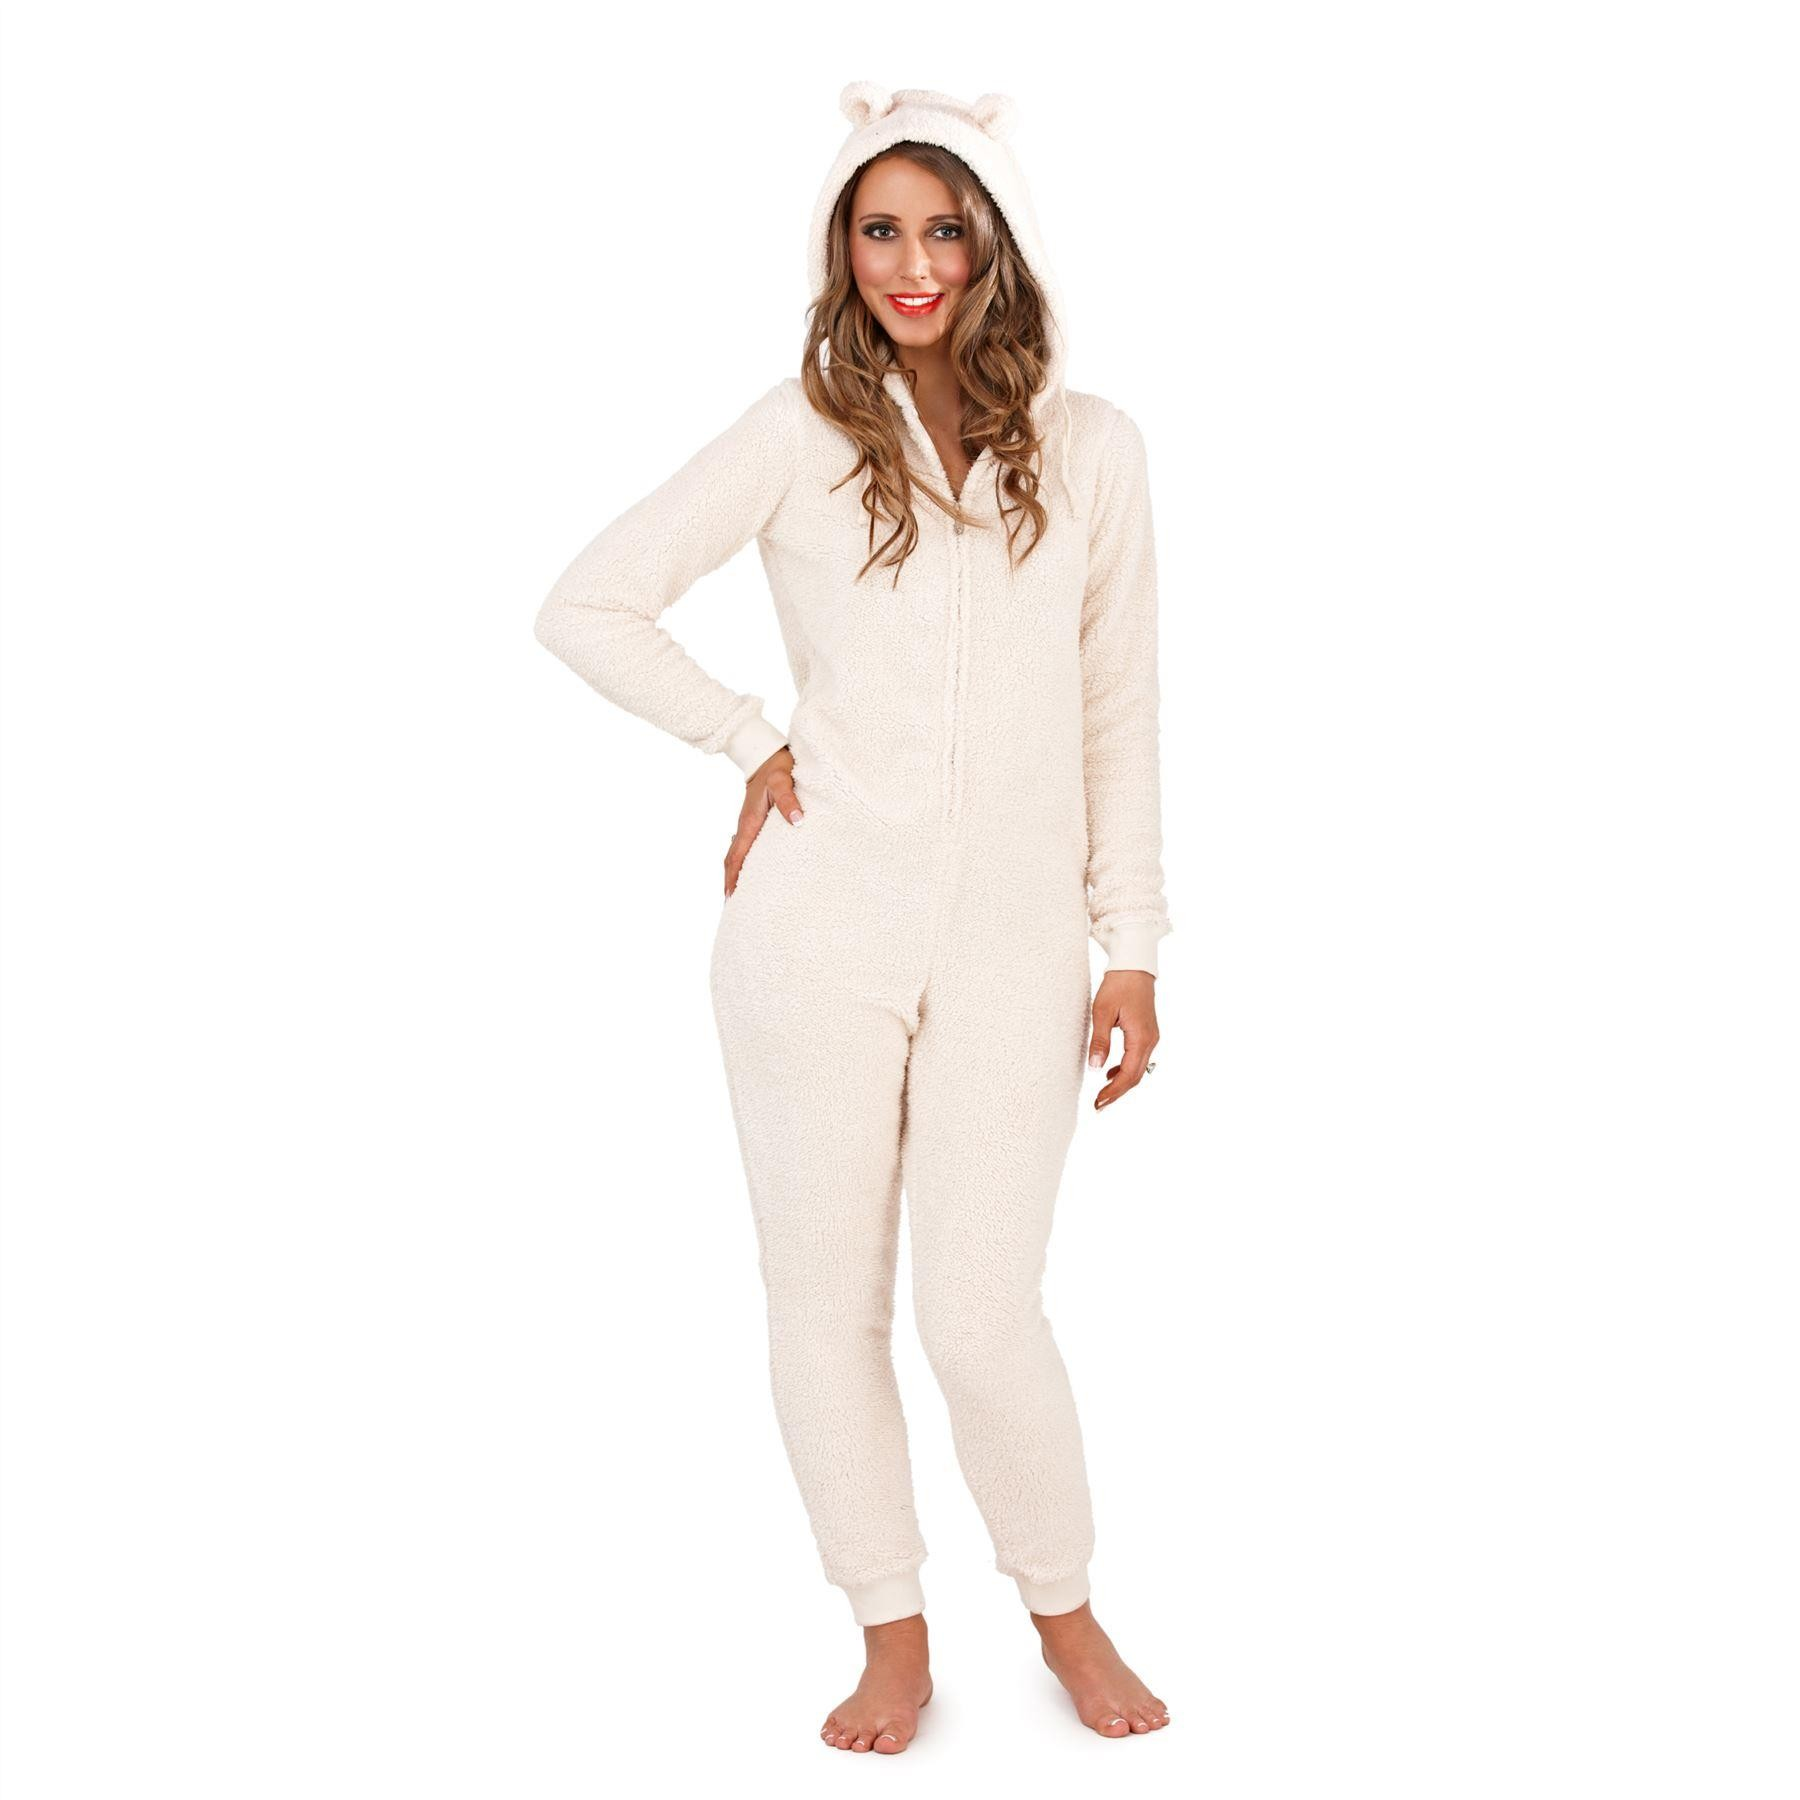 Loungeable Sherpa Onesie with Ears Cream